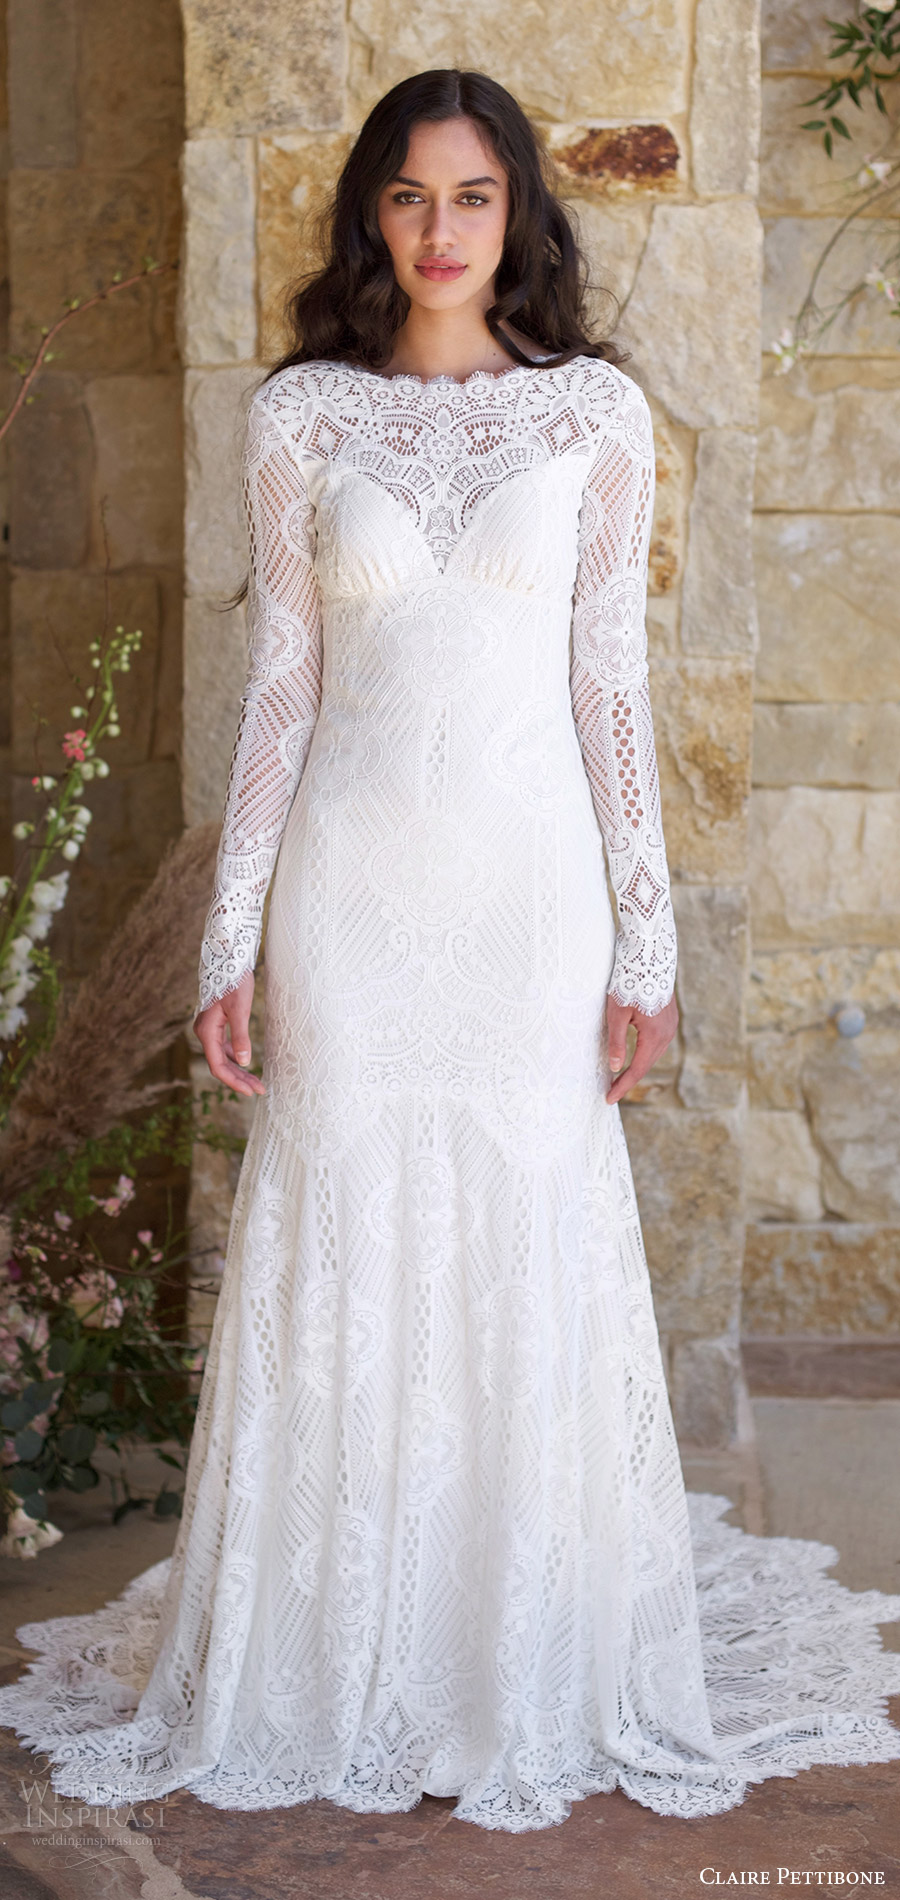 claire pettibone spring 2018 bridal long bell bateau neck lace trumpet wedding dress (shenandoah) mv keyhole back long train boho romantic